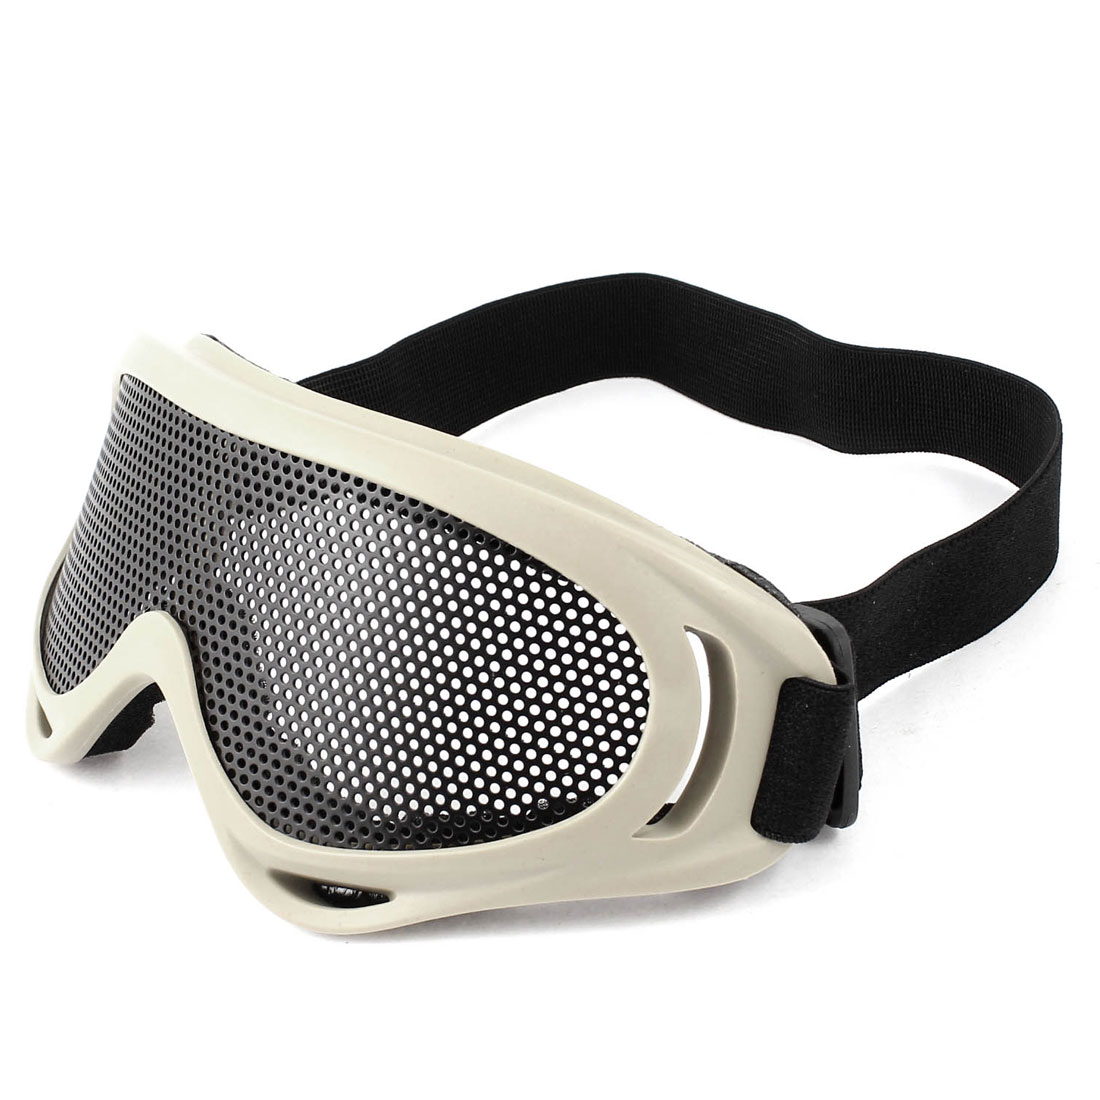 Airsoft Paintball Game Eye Protection Metal Mesh Safety Goggles Khaki